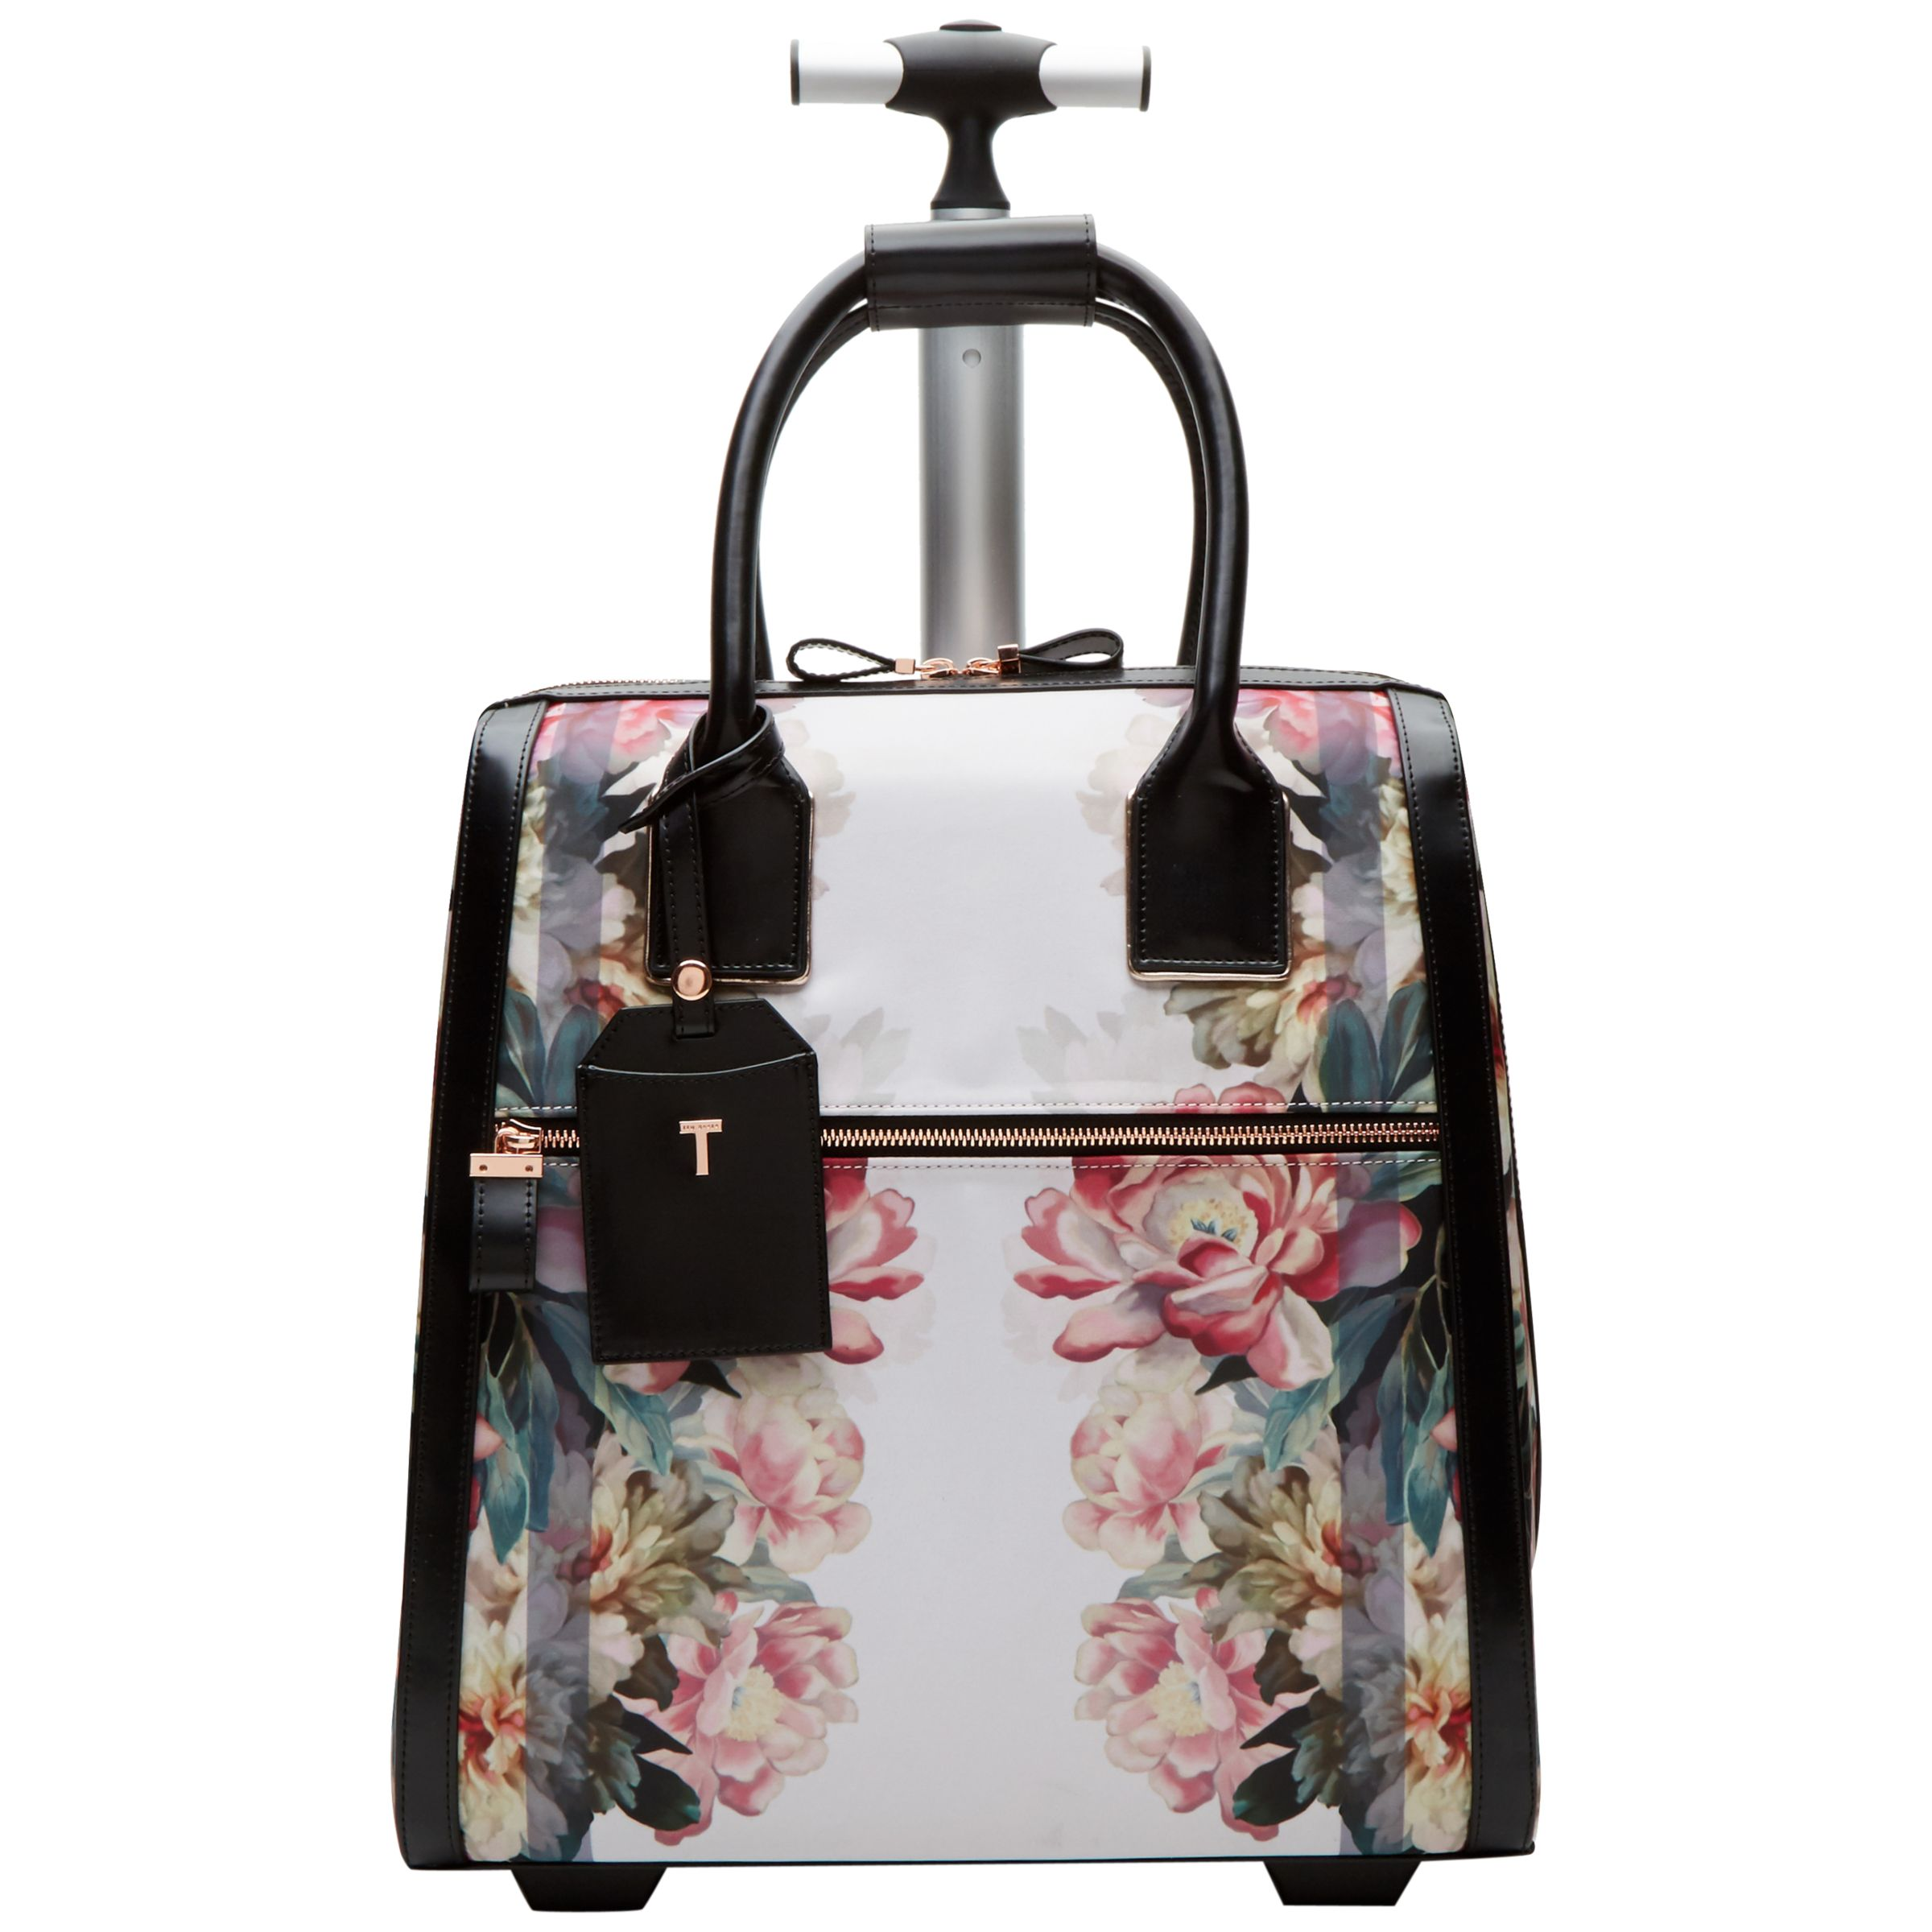 016932e83 Ted Baker Naoimie Painted Posie Travel Bag